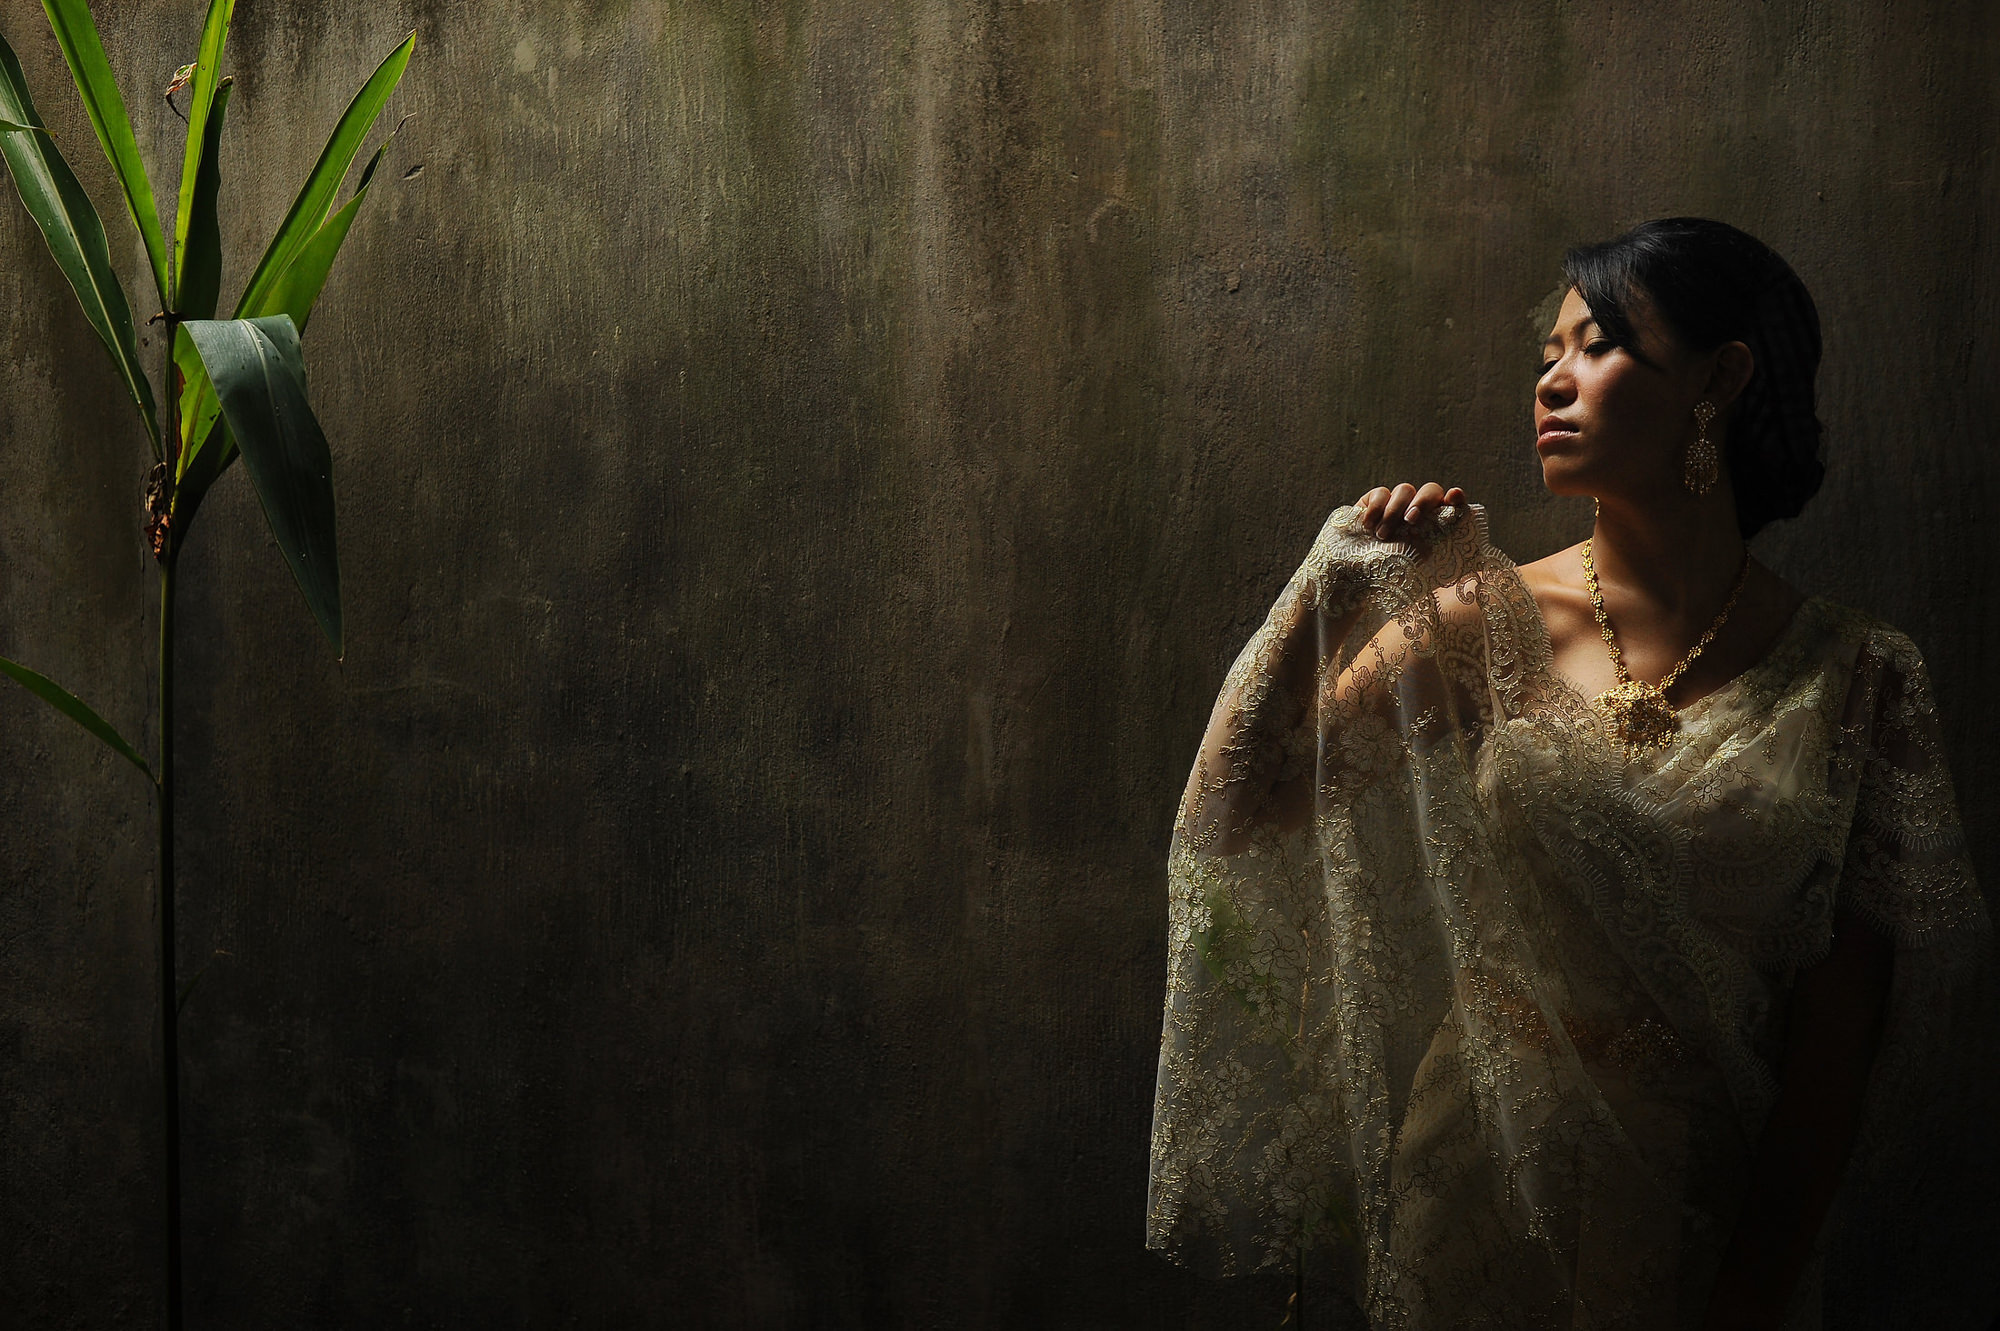 Asian bride portrait in lace gown soft lighting - photo by Daniel Aguilar